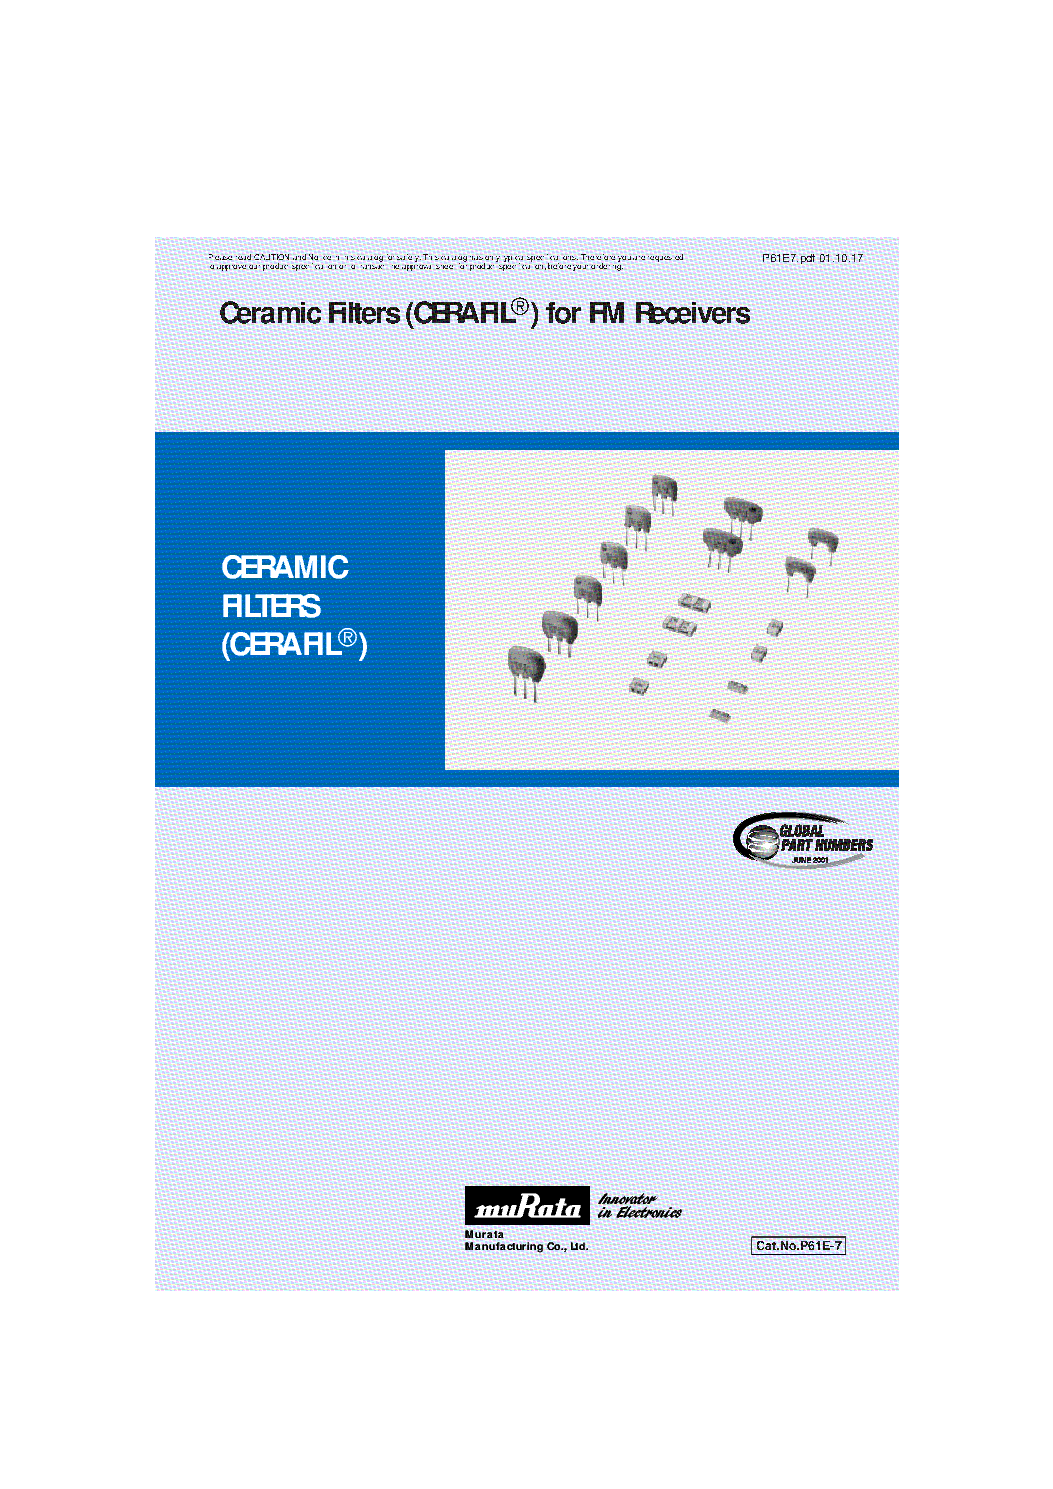 MURATA CERAMIC FILTERS [CERAFIL] FOR FM RECEIVERS CATALOGUE service manual (1st page)